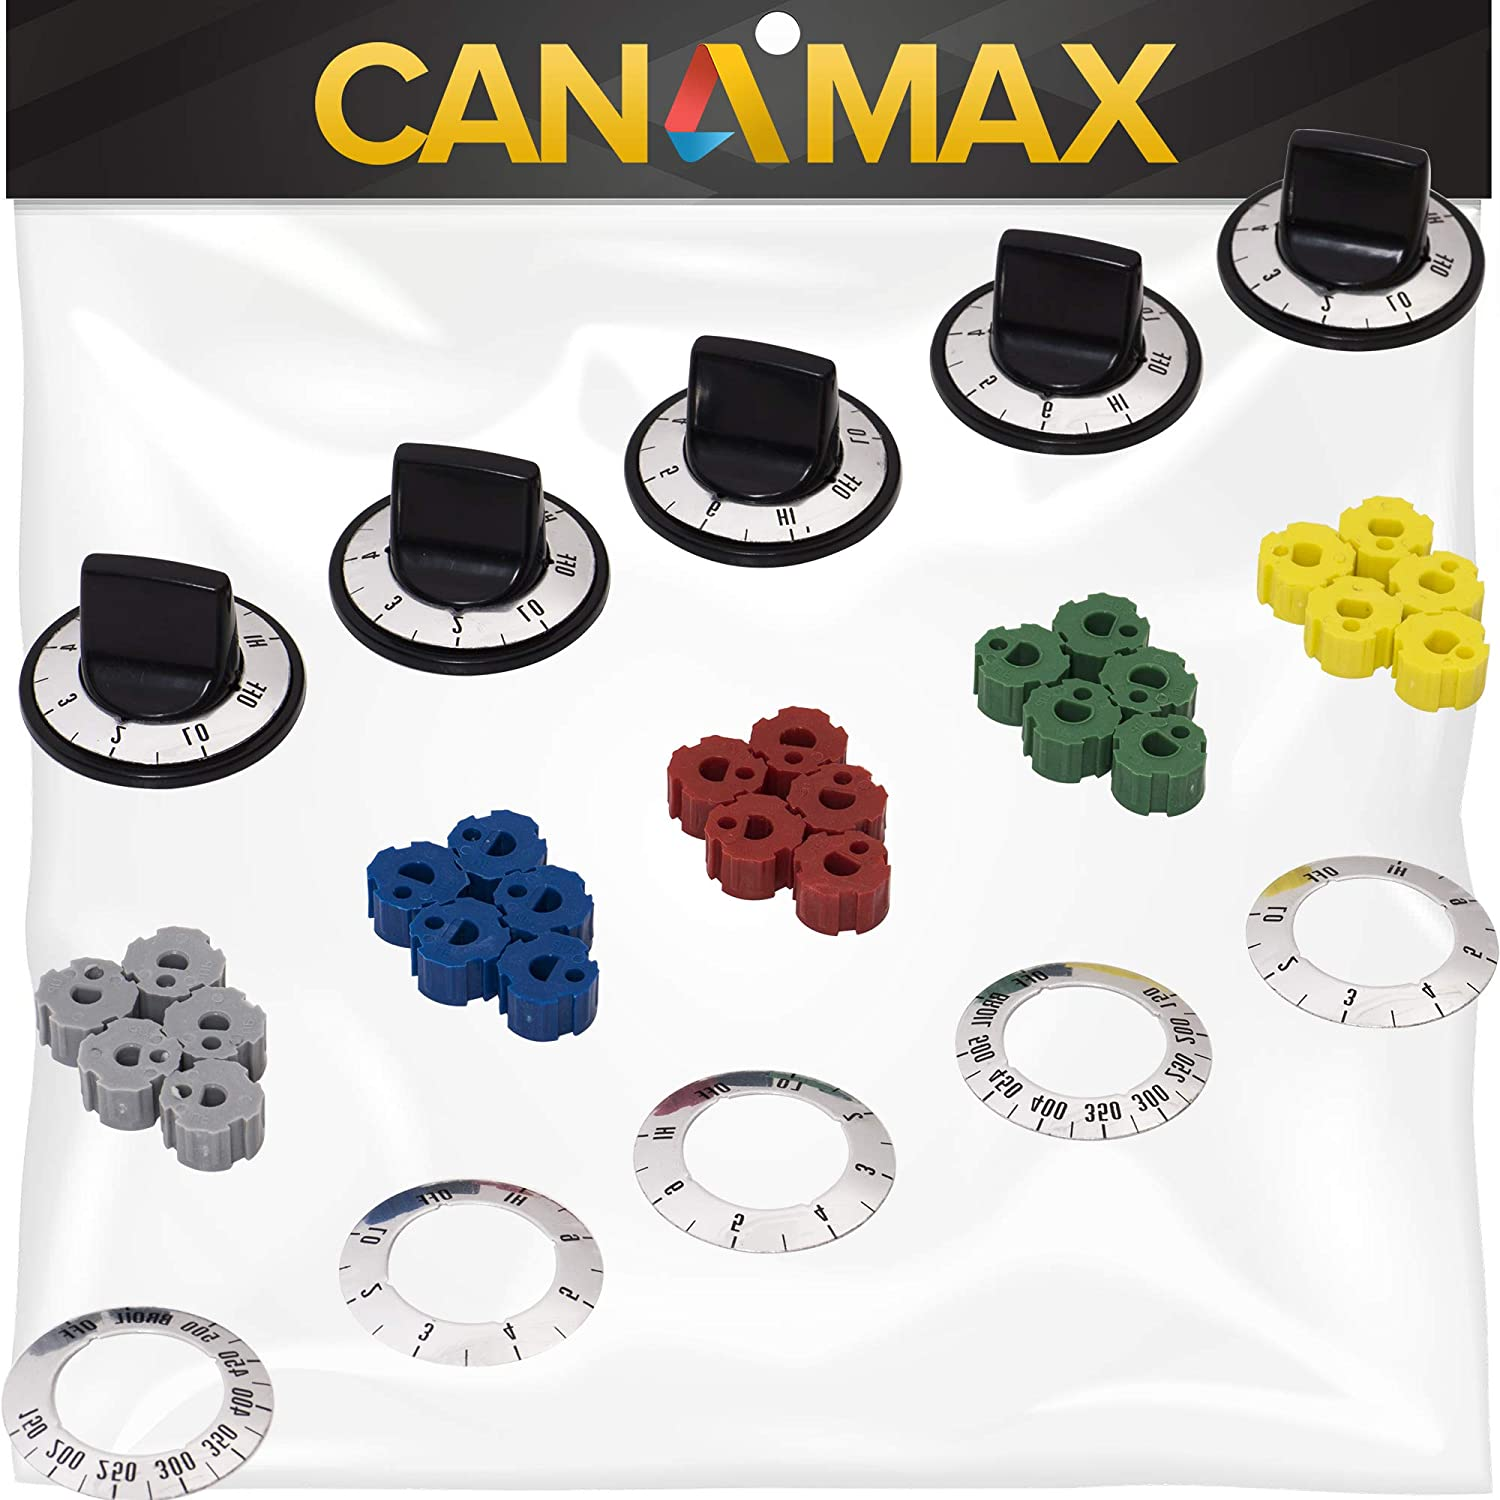 KN002 RKE Universal Electric Range Knob Kit Premium Replacement by Canamax - Compatible with Most Oven and Range Brands - Replaces RK103, MA-XP6, AP5641247